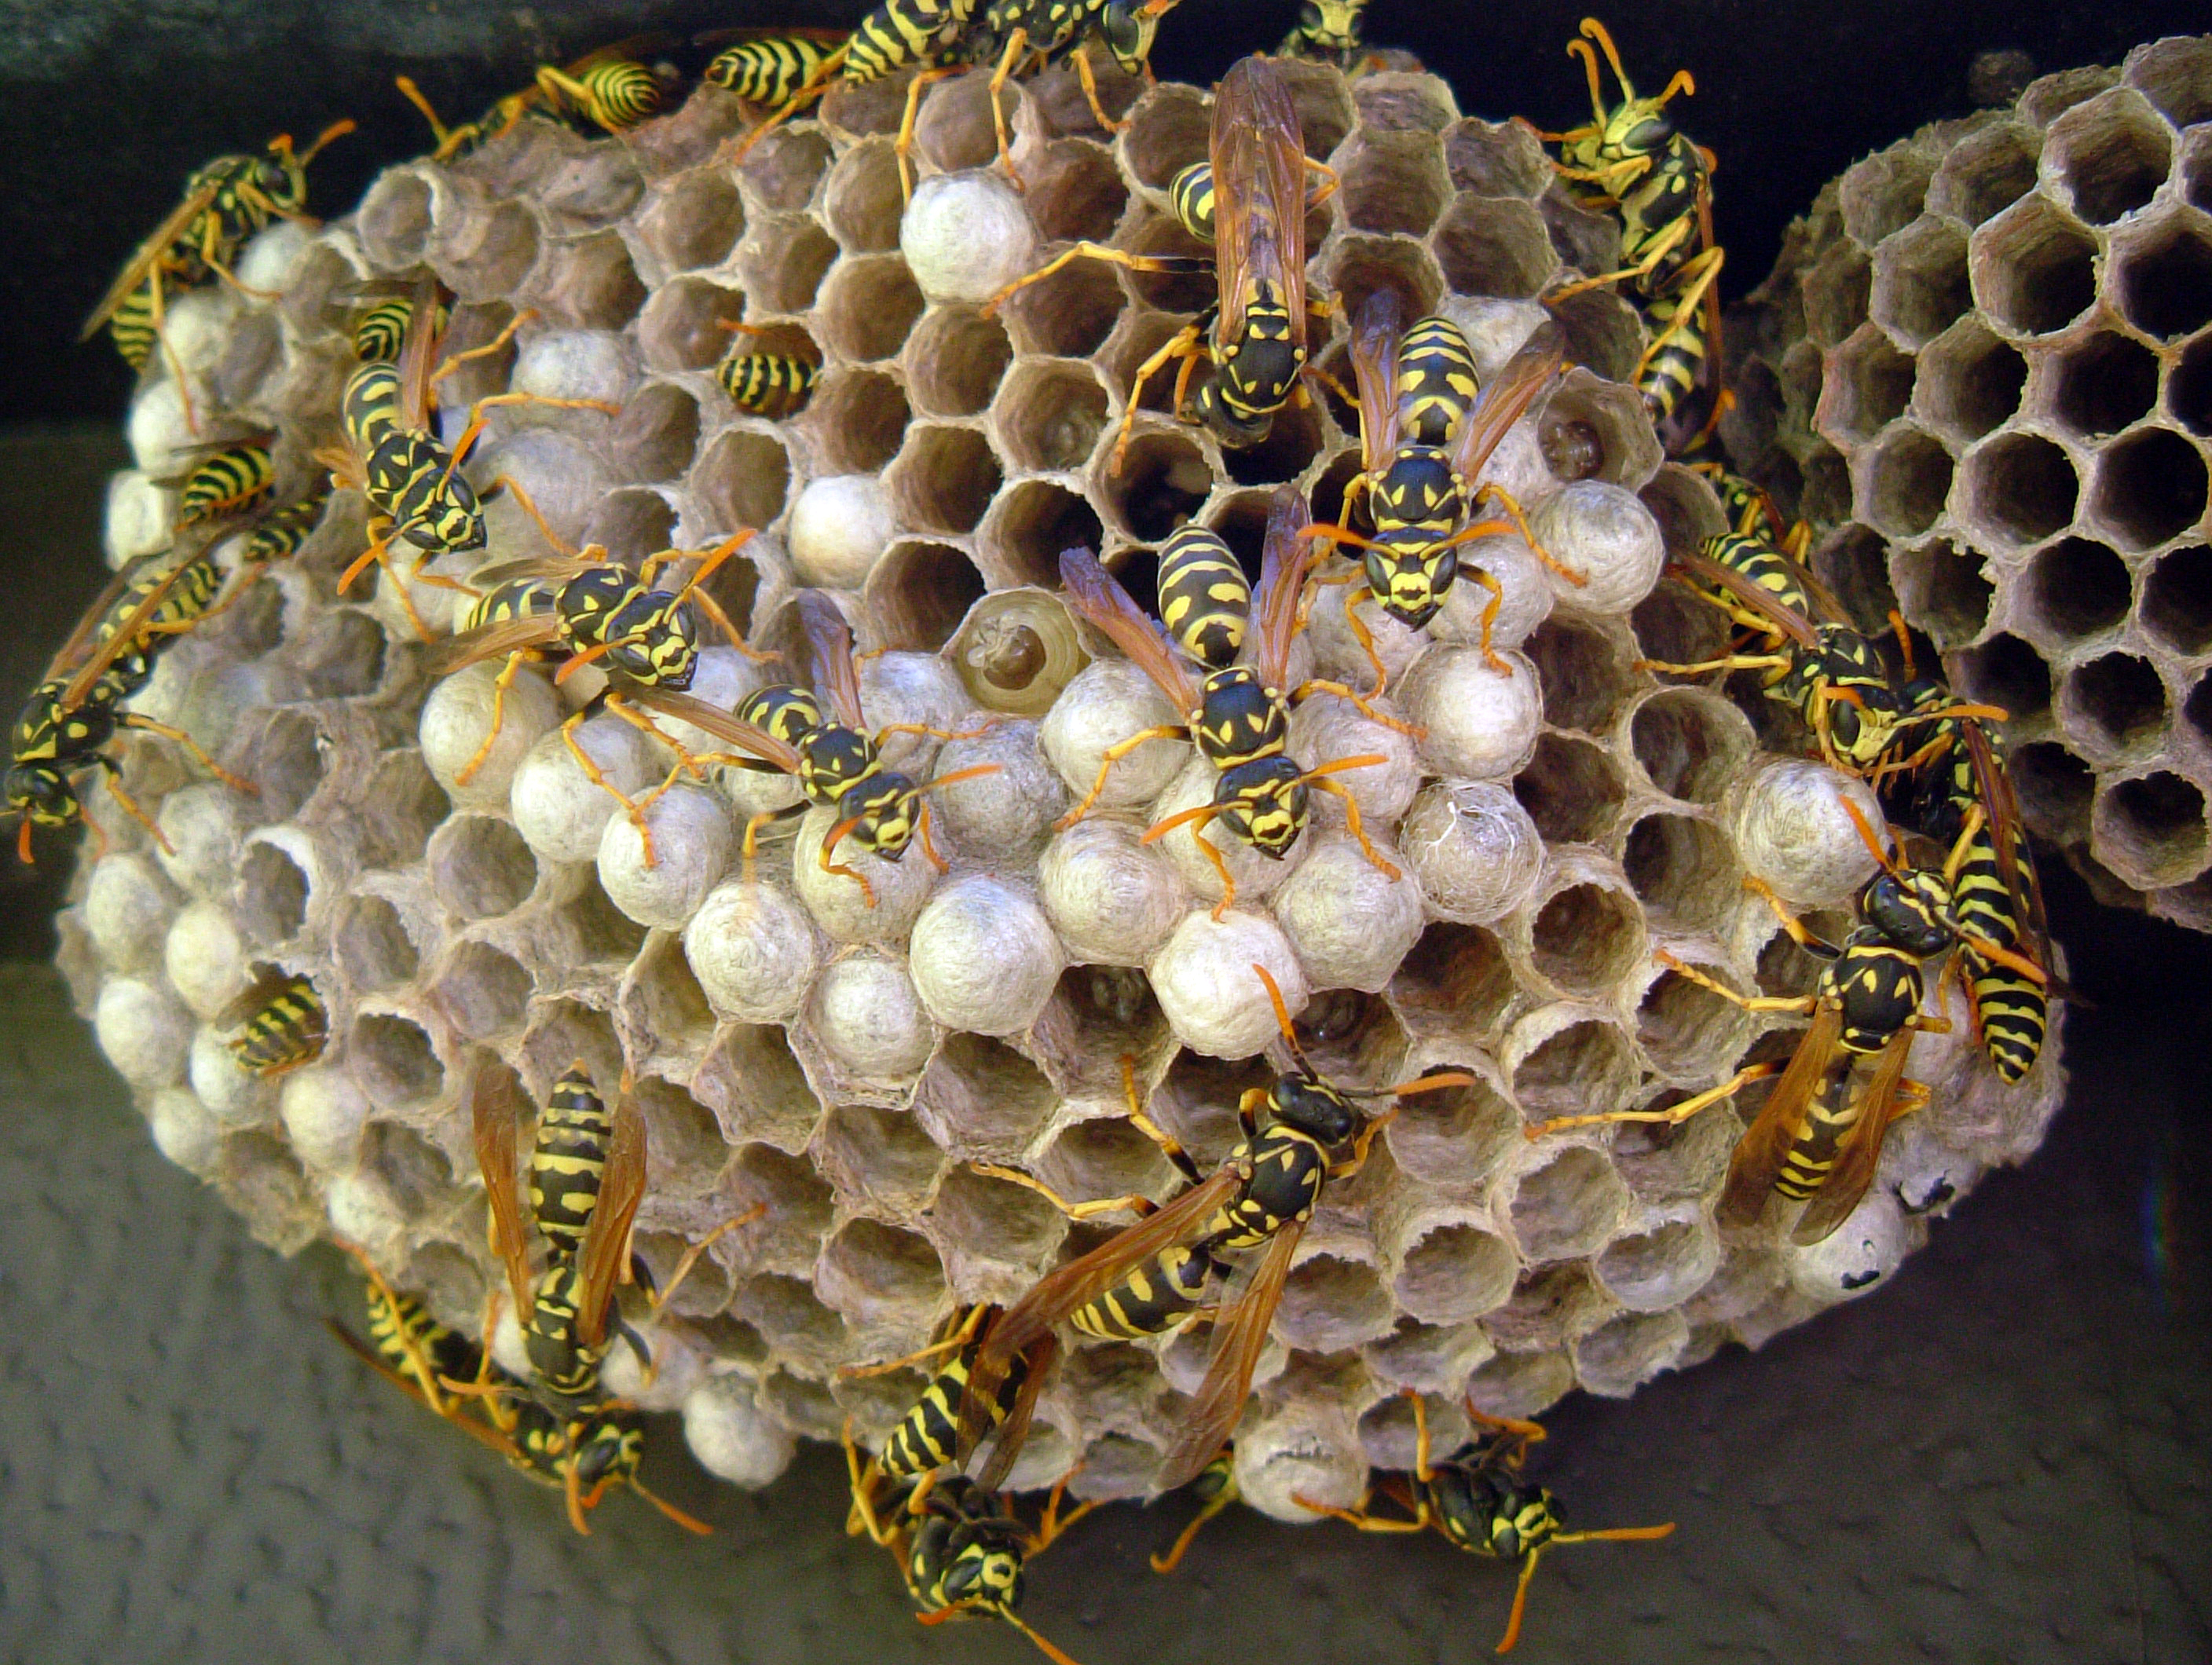 Wasp Nest | Flickr - Photo Sharing!